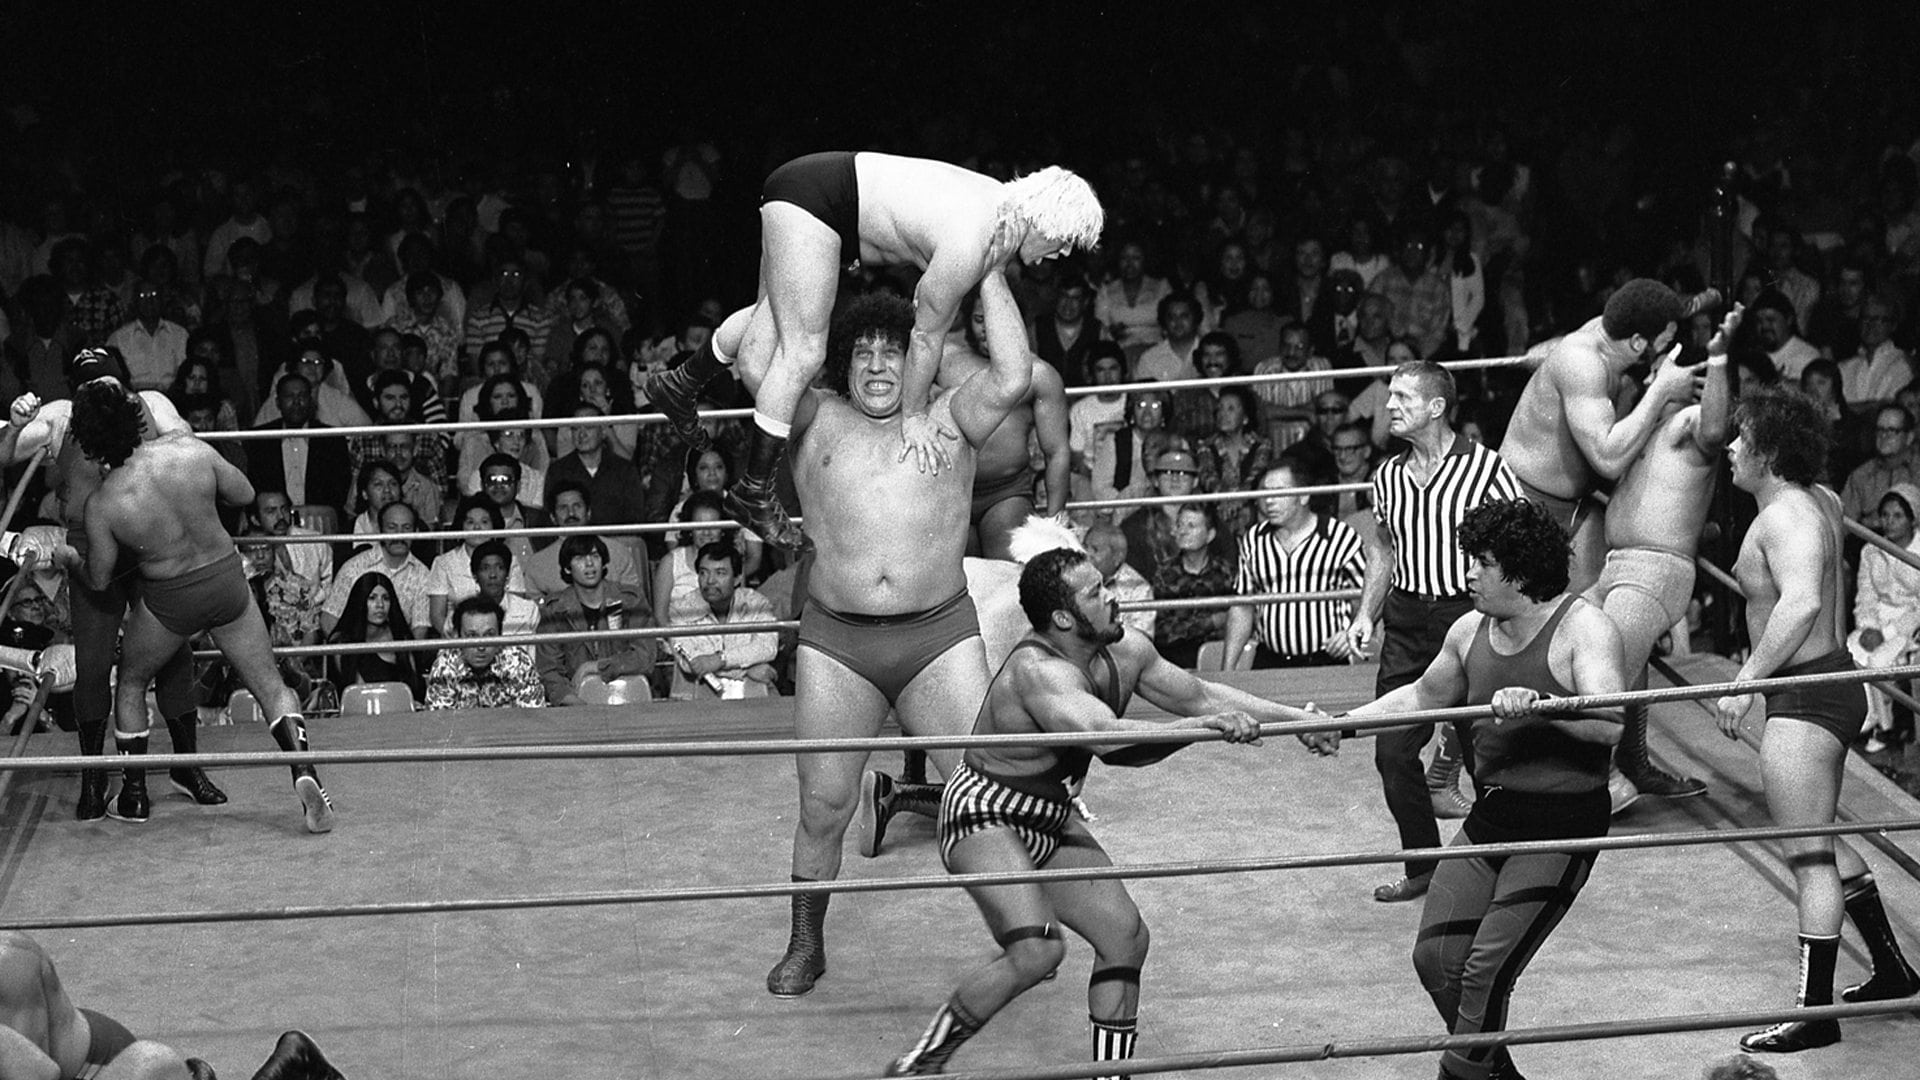 andre the giant roussimoff wrestling wrestler vince mcmahon injury suspension